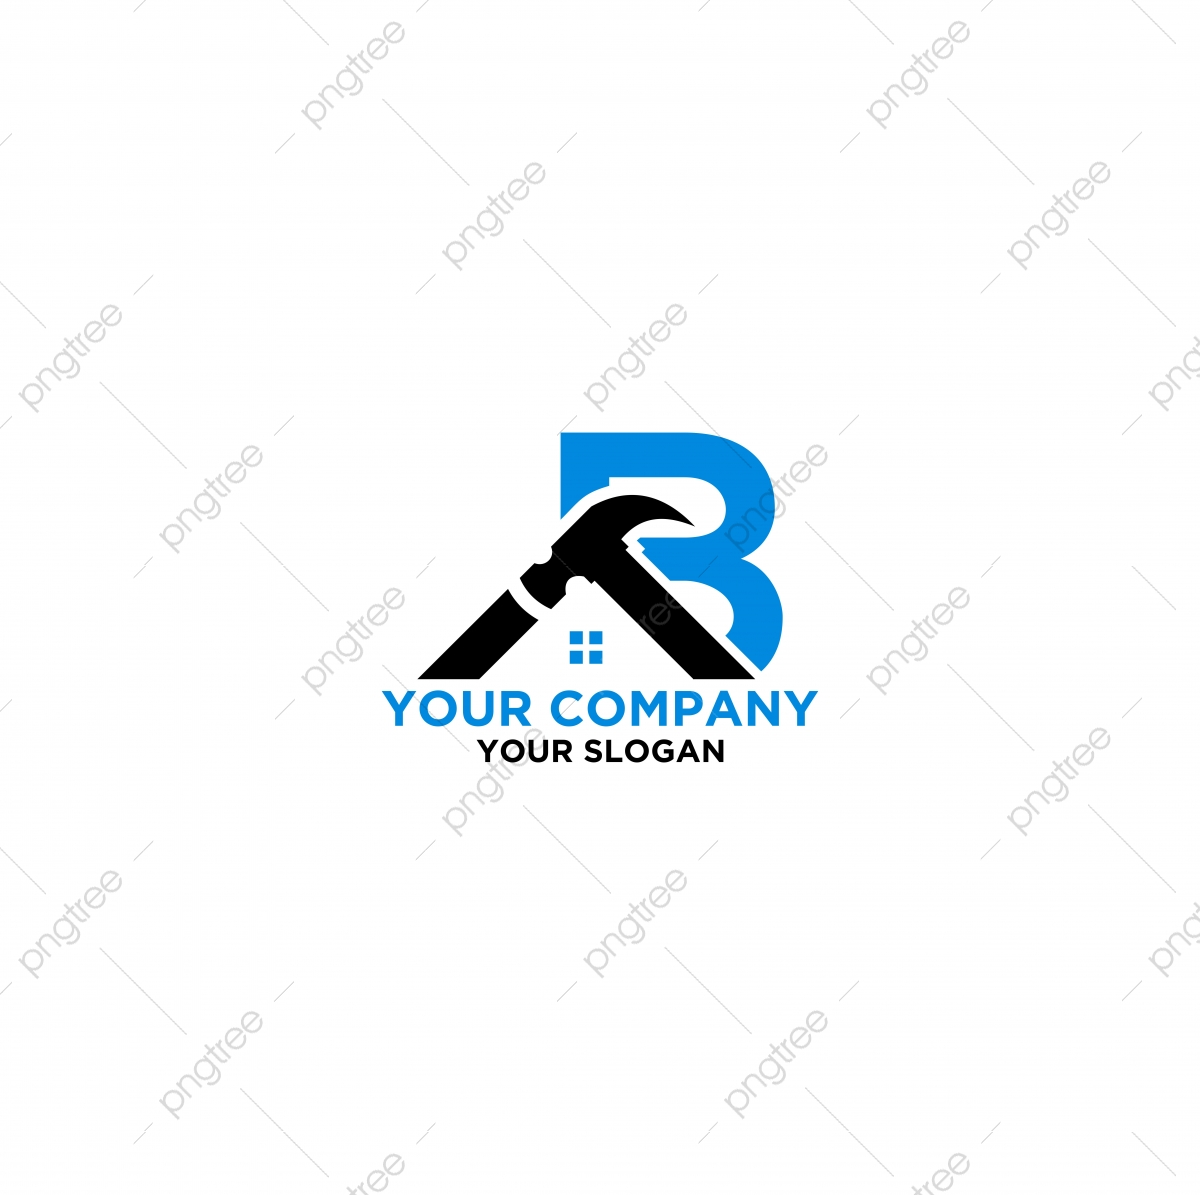 B Home Construction Logo Design Vector Template For Free Download On Pngtree,Simple Horse Embroidery Design